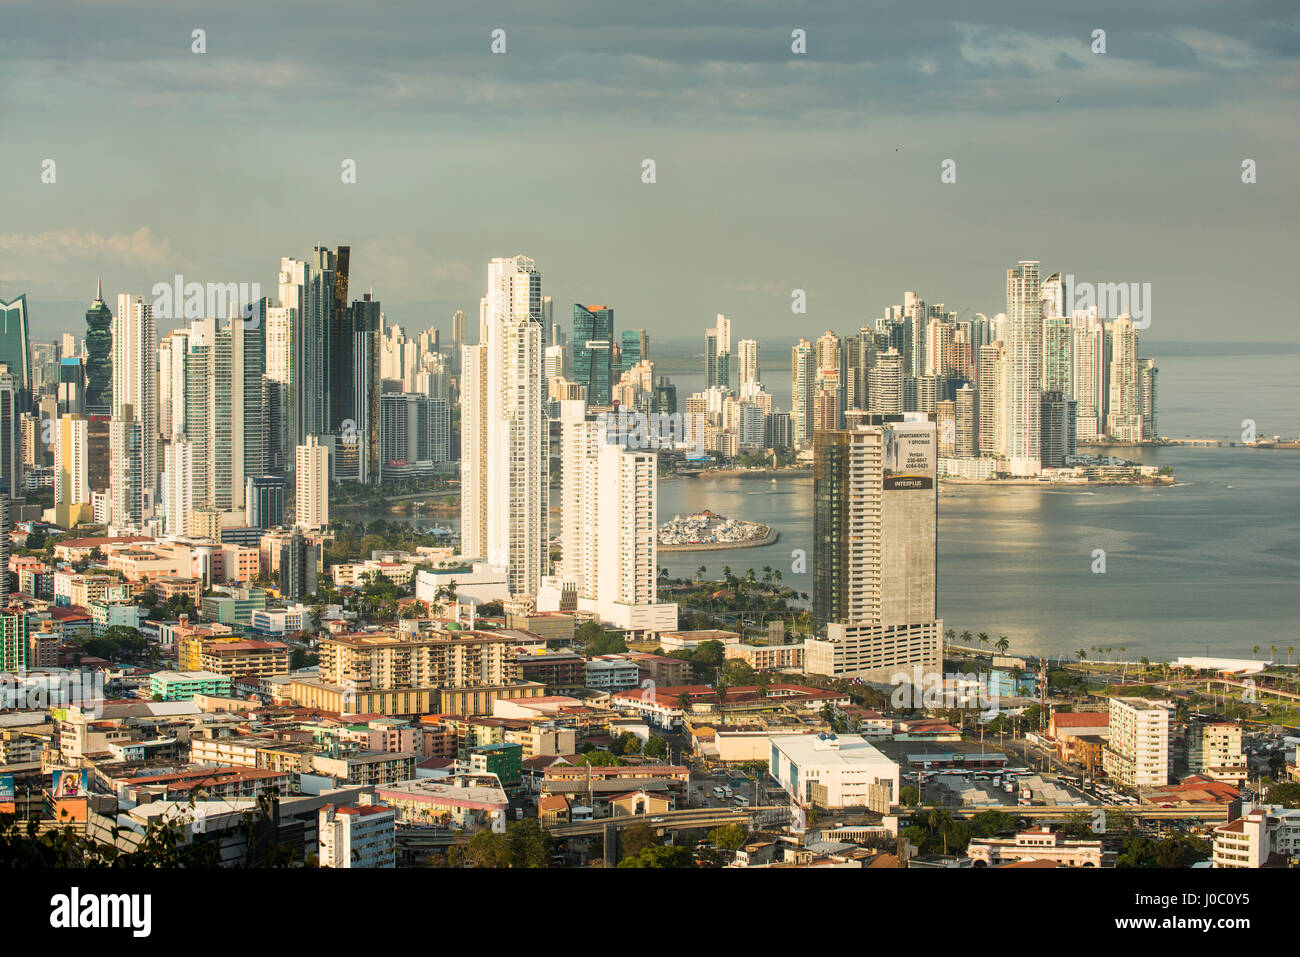 View over the skyline of Panama City from El Ancon, Panama, Central America - Stock Image